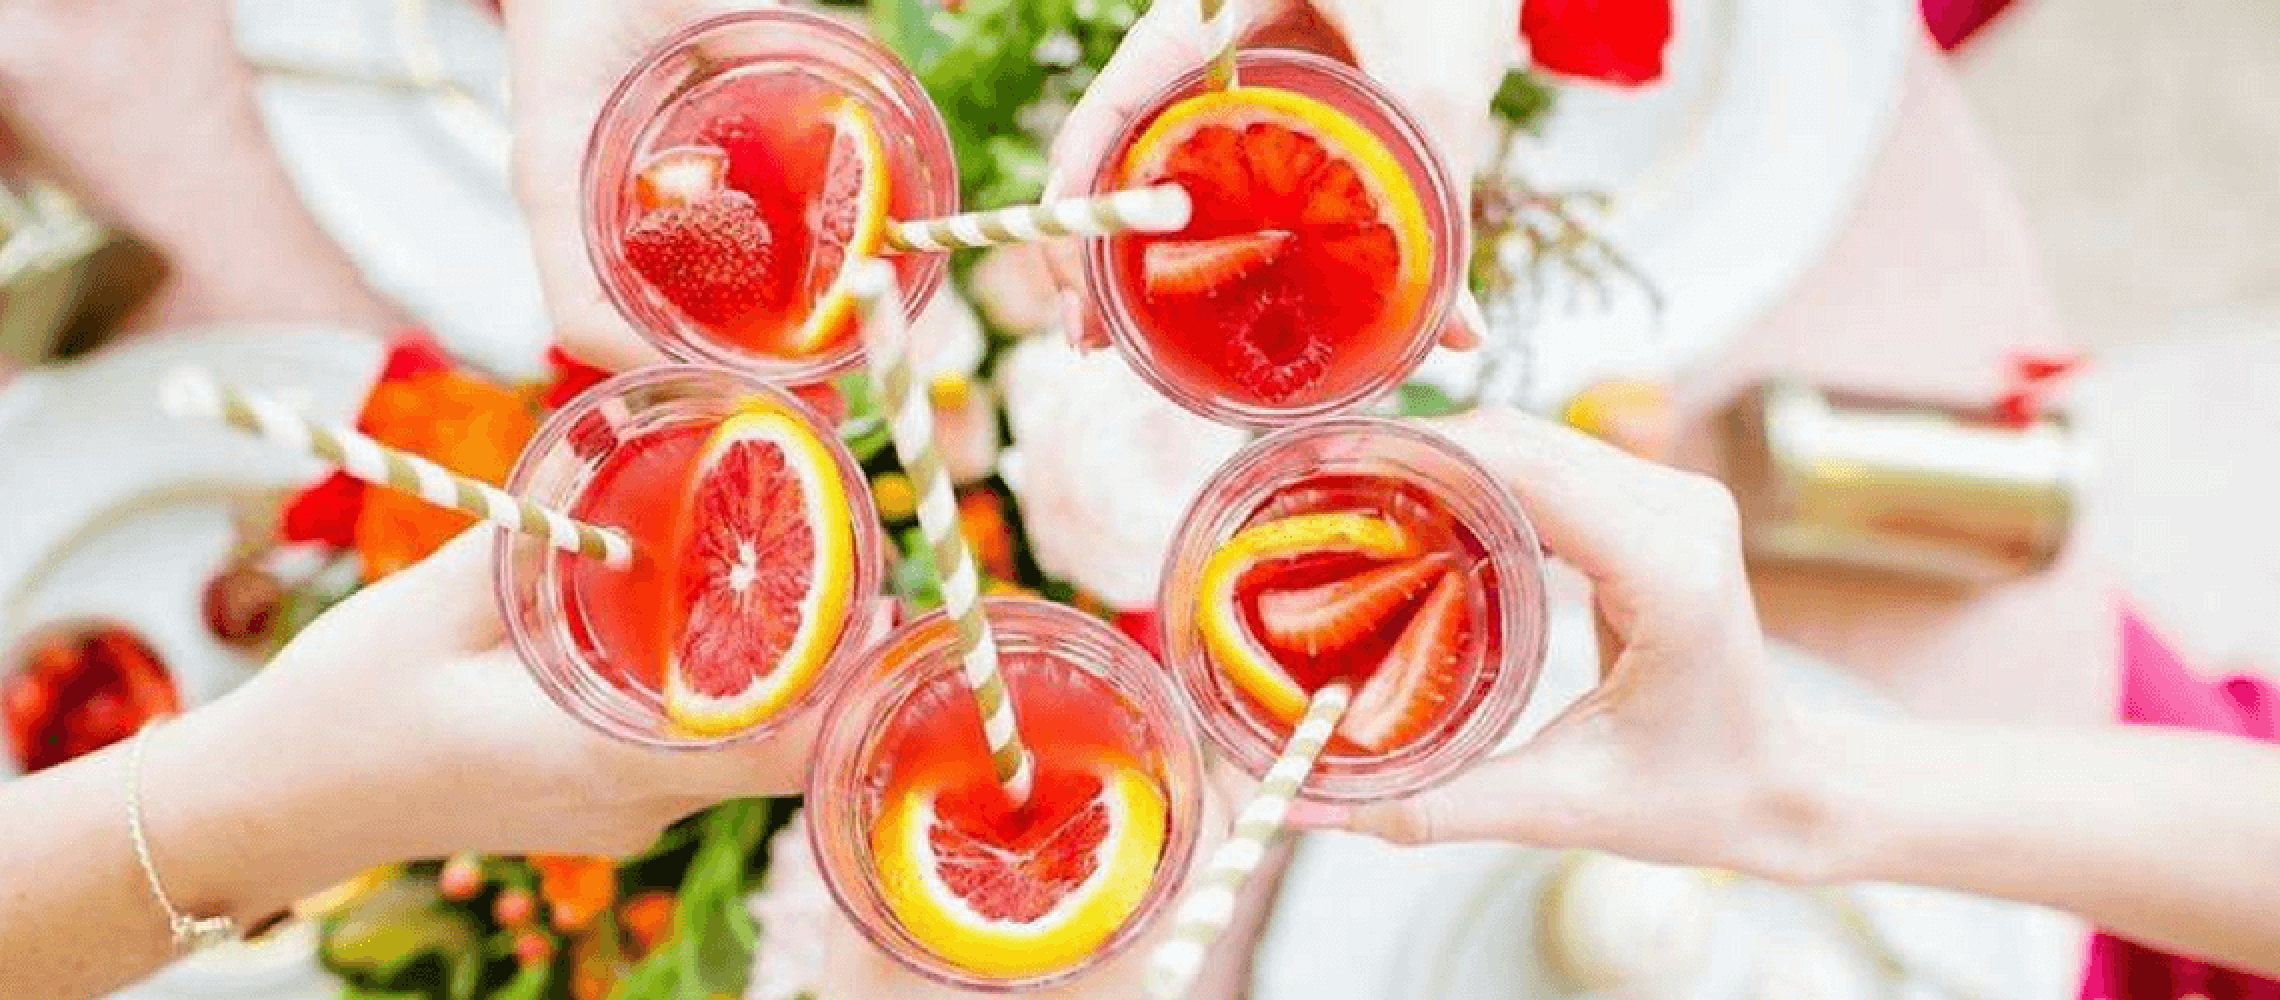 Photo for: Presenting PULPOLOCO Sangria – A Refreshing Wine Cocktail